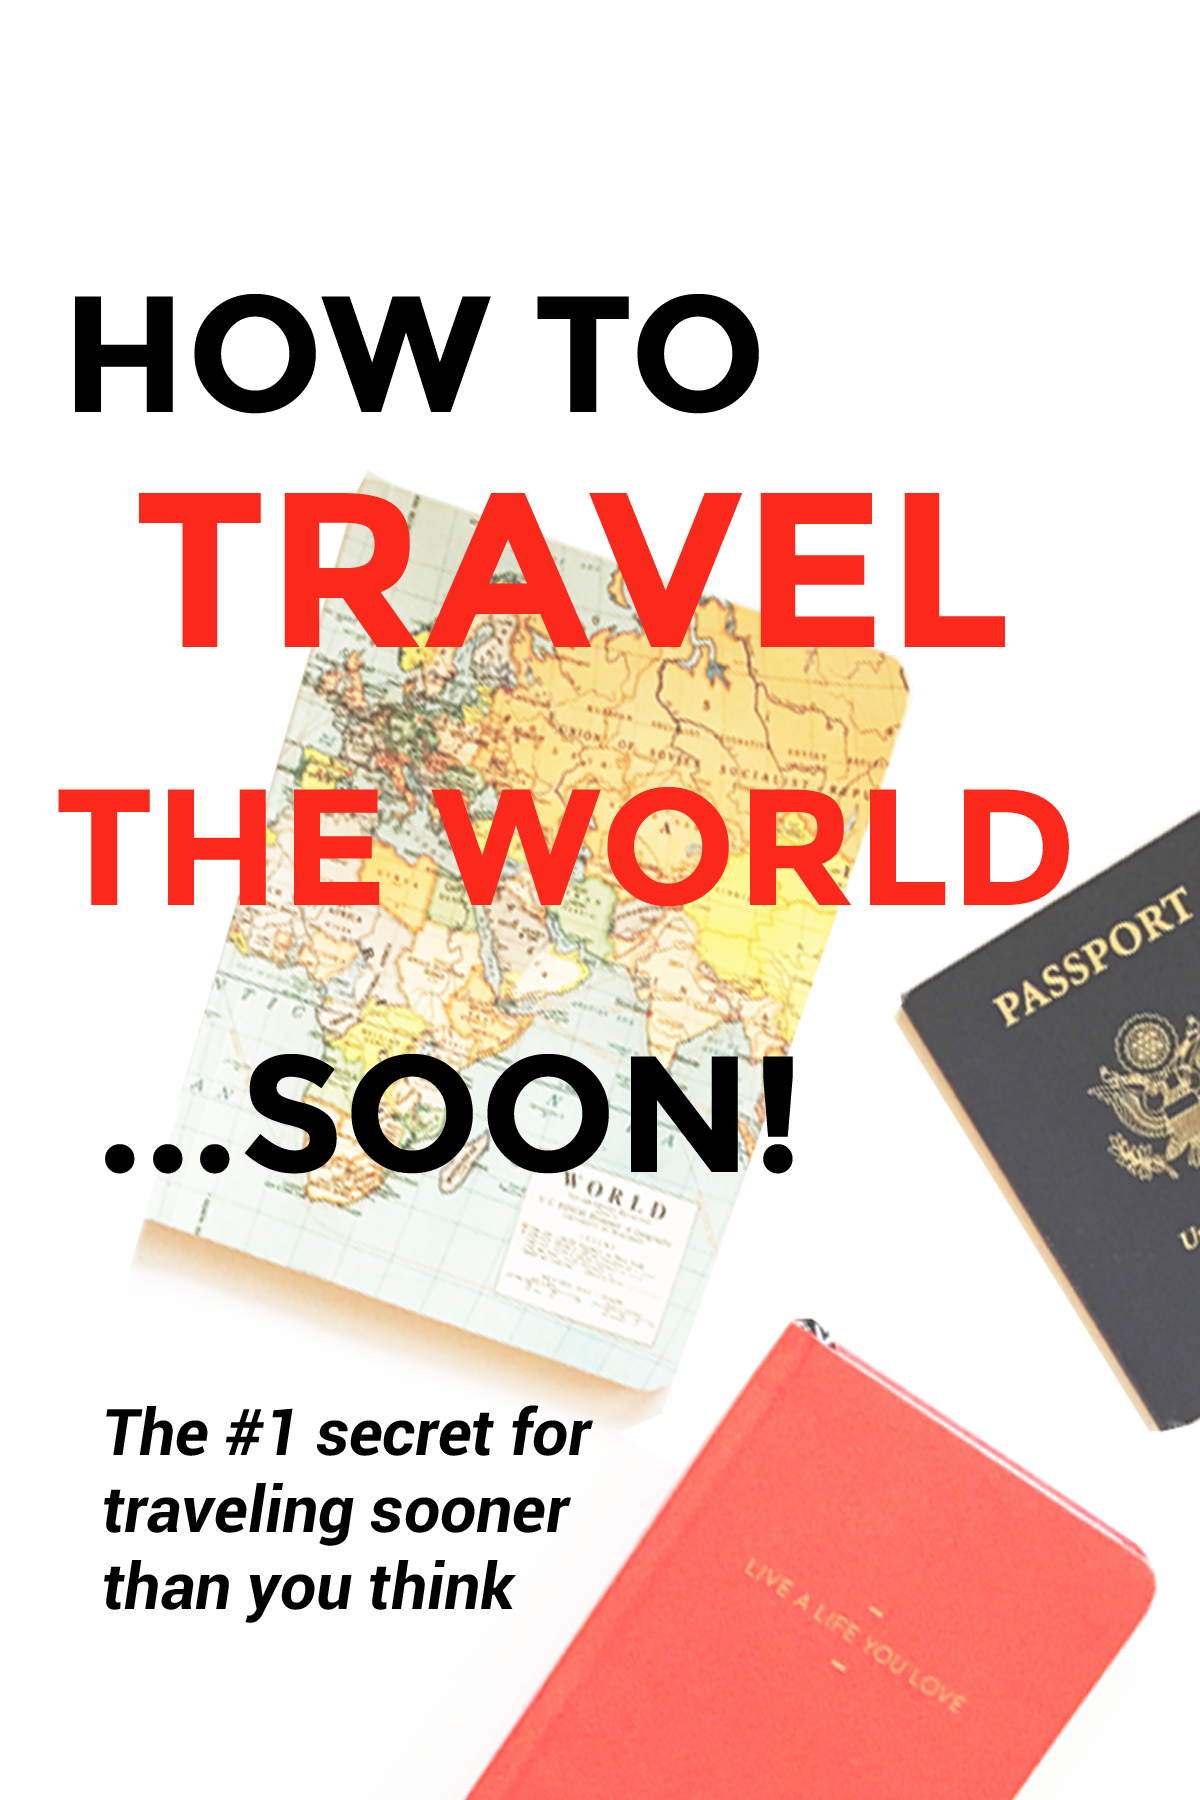 The #1 secret for traveling sooner than you think - so you don't have to wait to travel ;) Do it now!